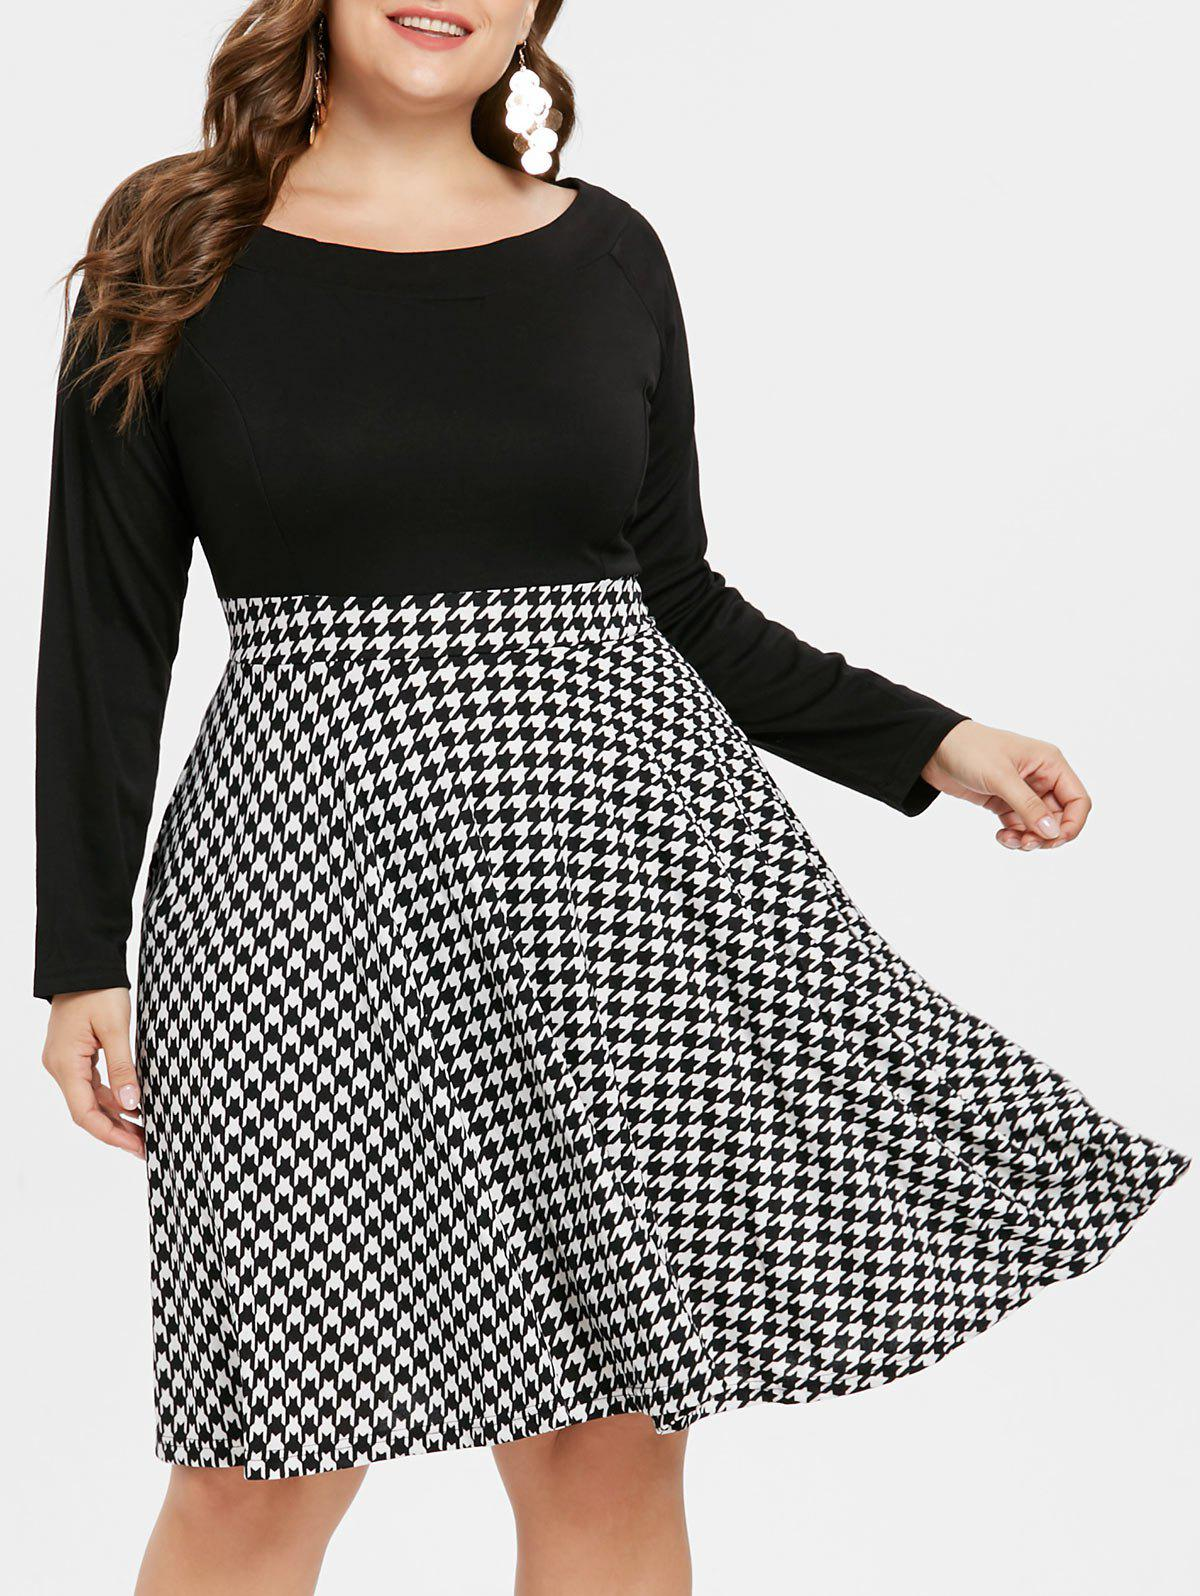 38% OFF] Houndstooth Pattern Plus Size Flare Dress | Rosegal